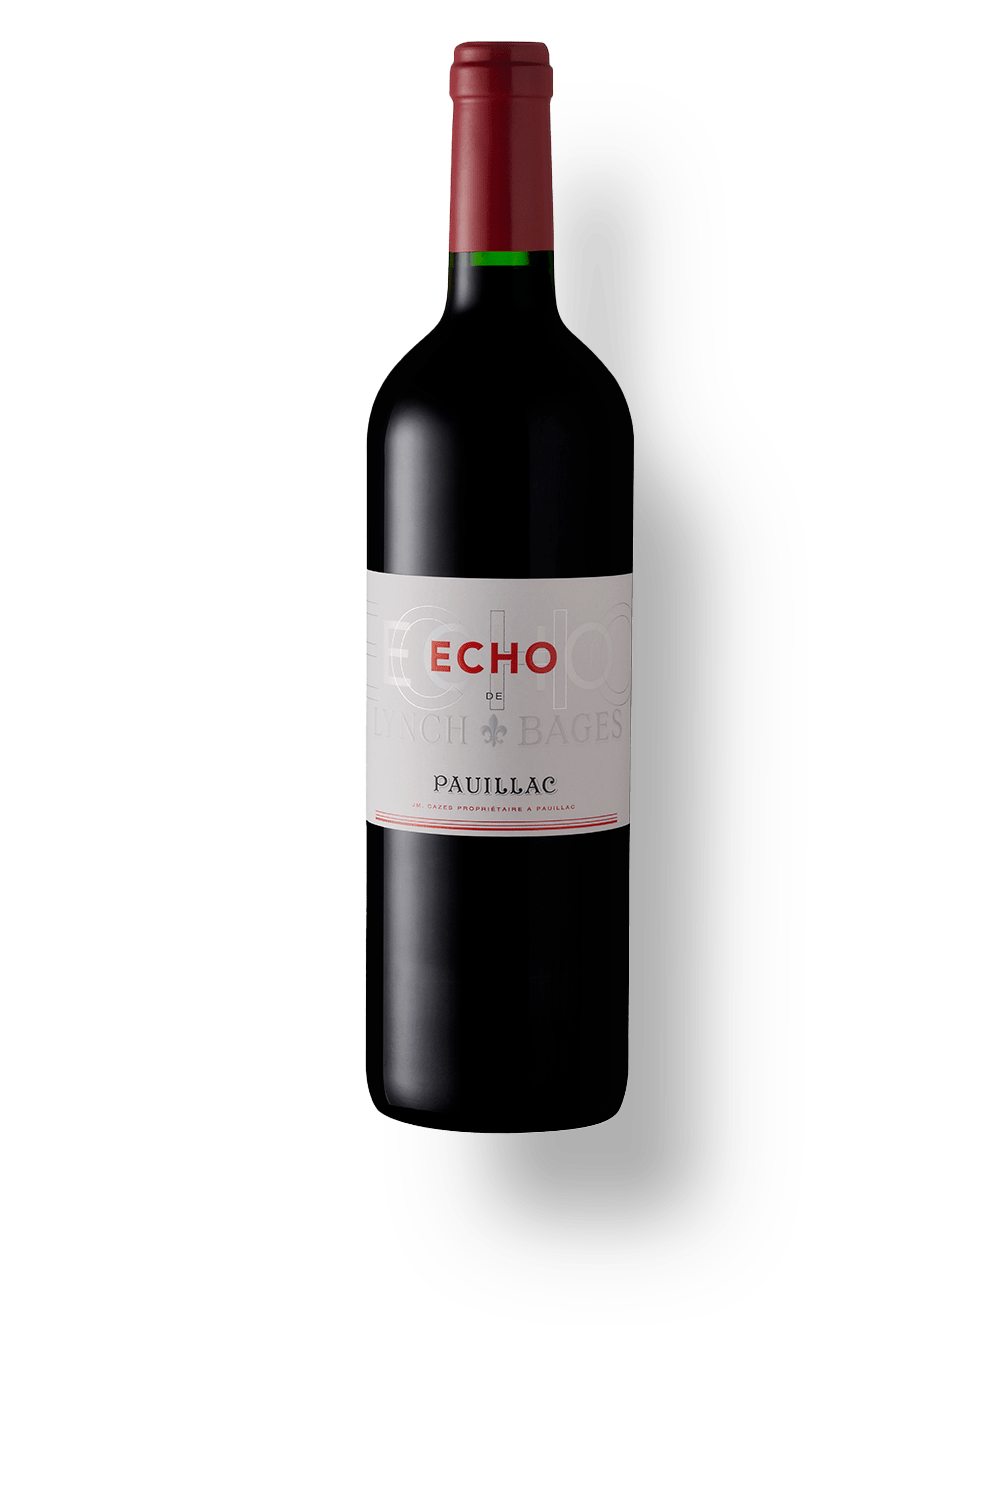 Vinho_Tinto_Echo_de_Lynch_Bages_2_Ch_Lynch_Bages_020837_2010